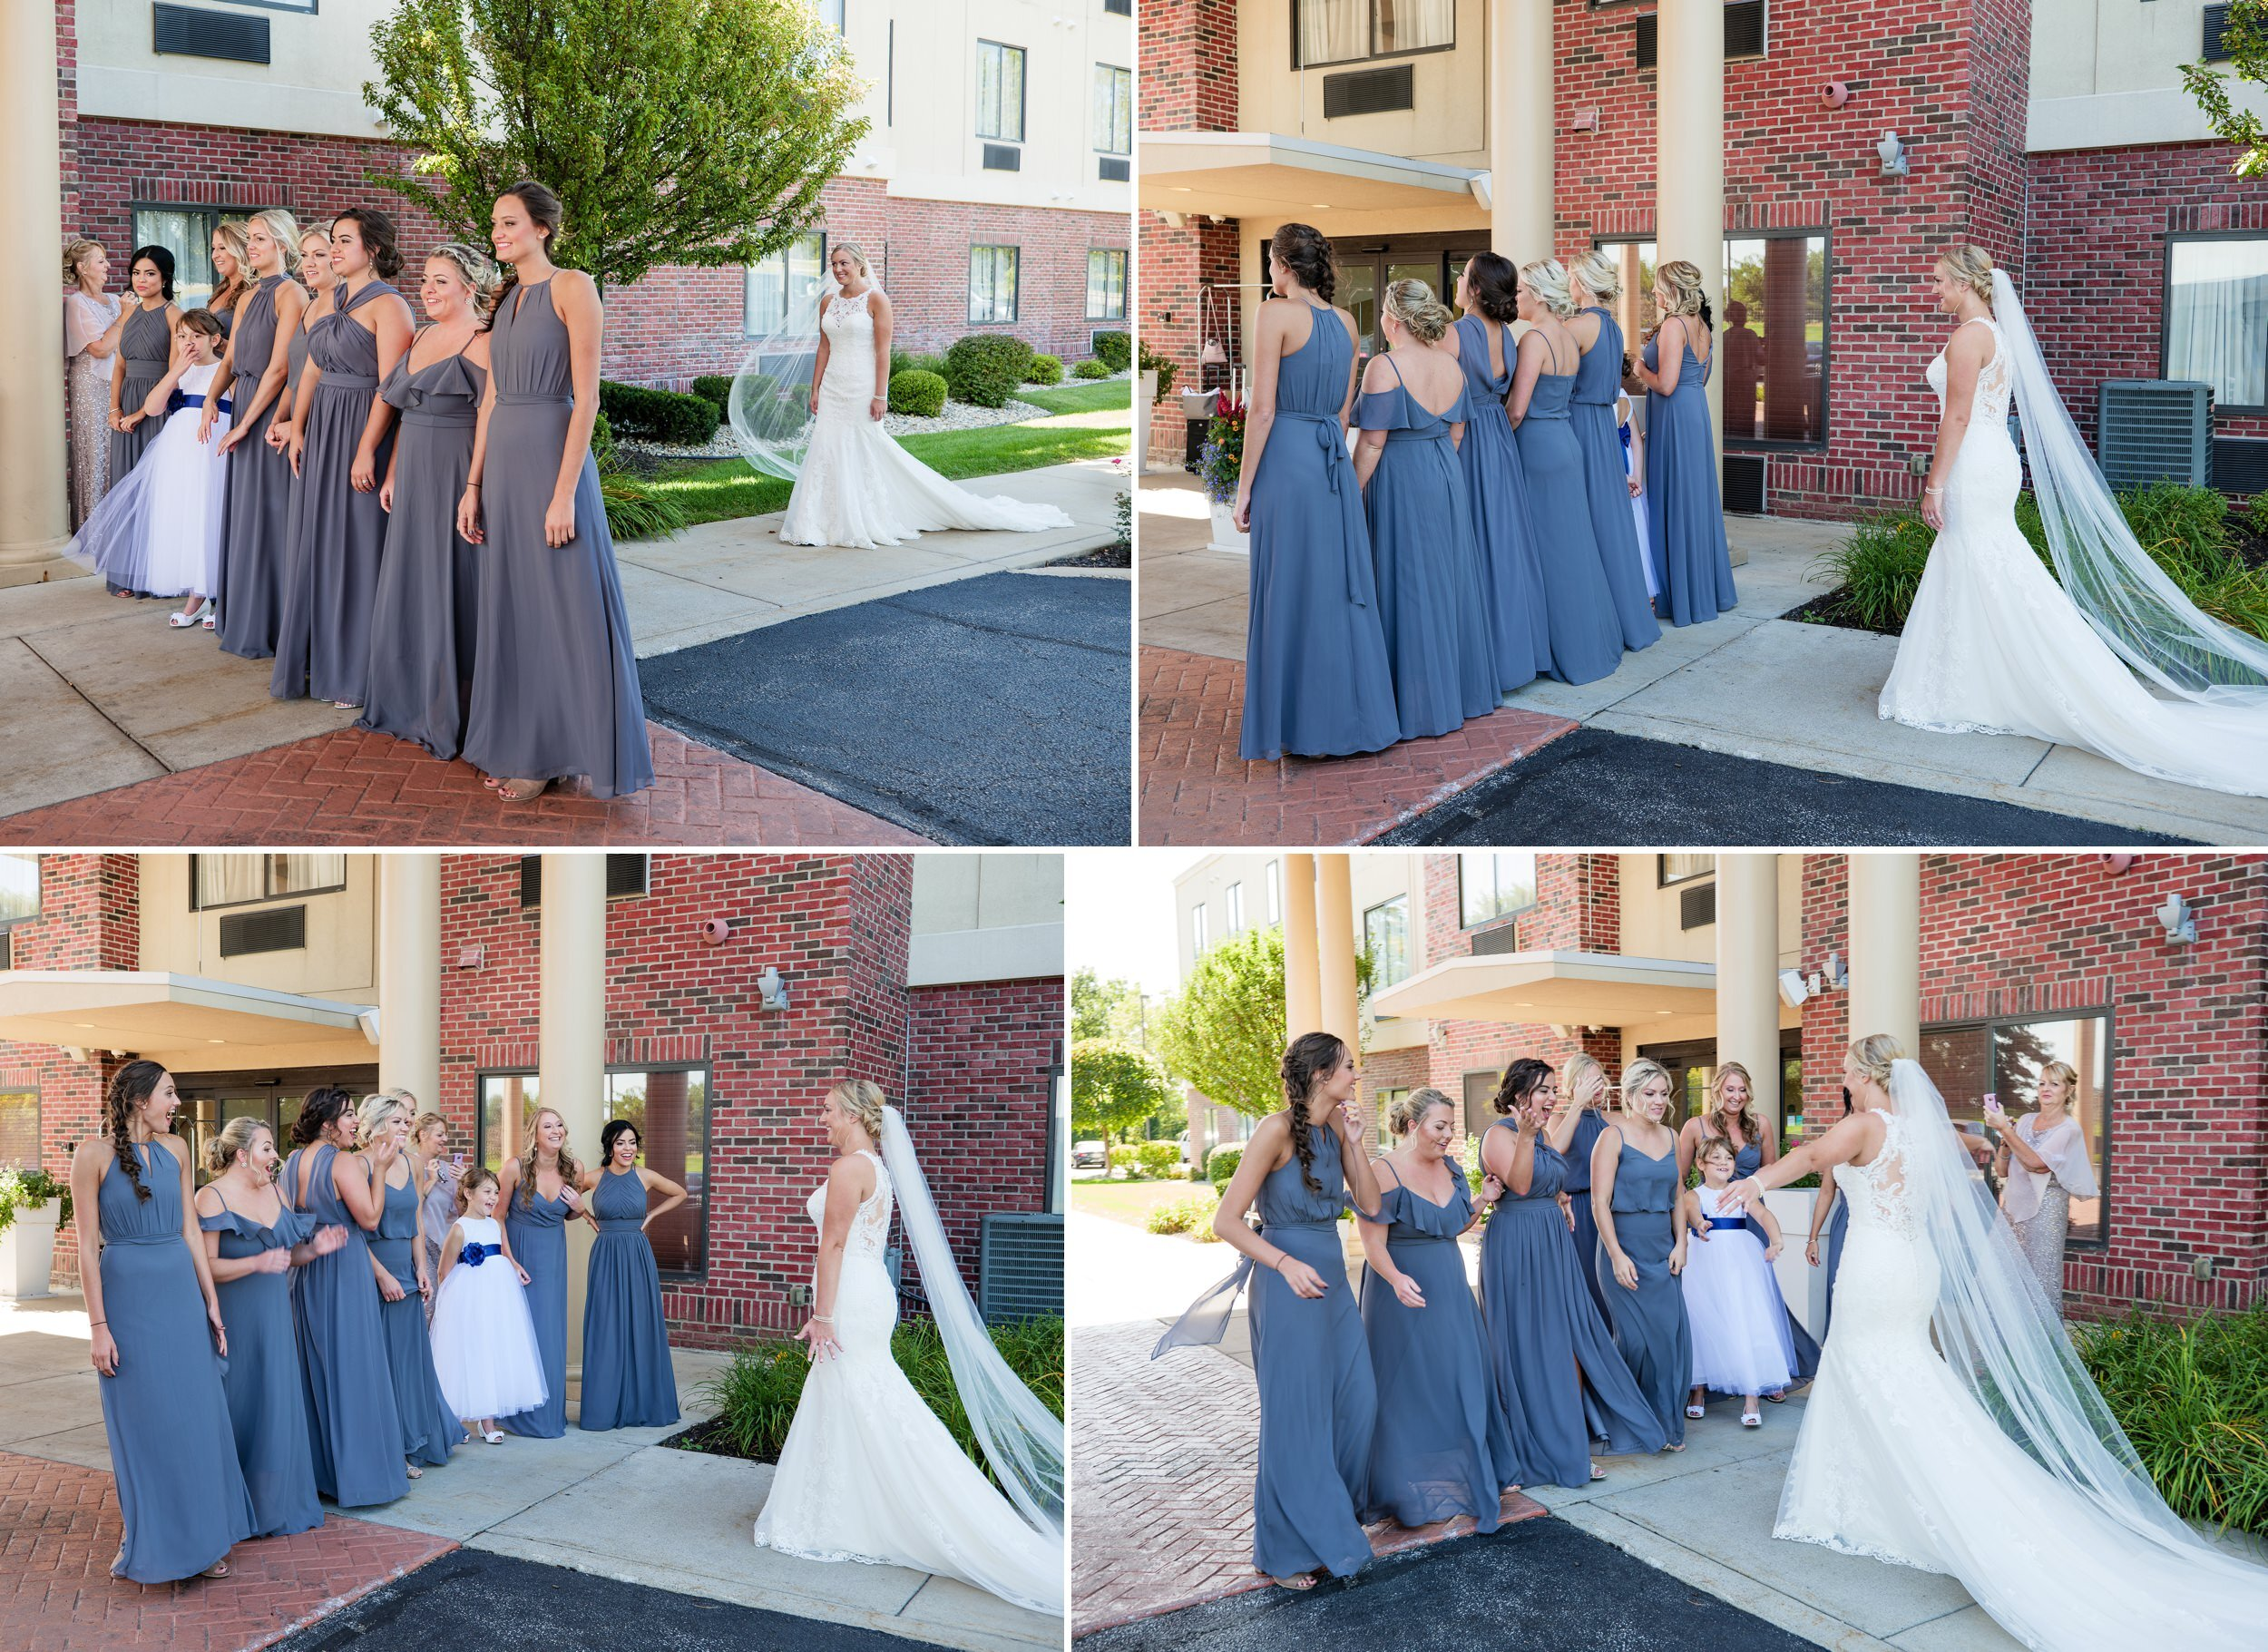 The dress reveal with the bridesmaids.